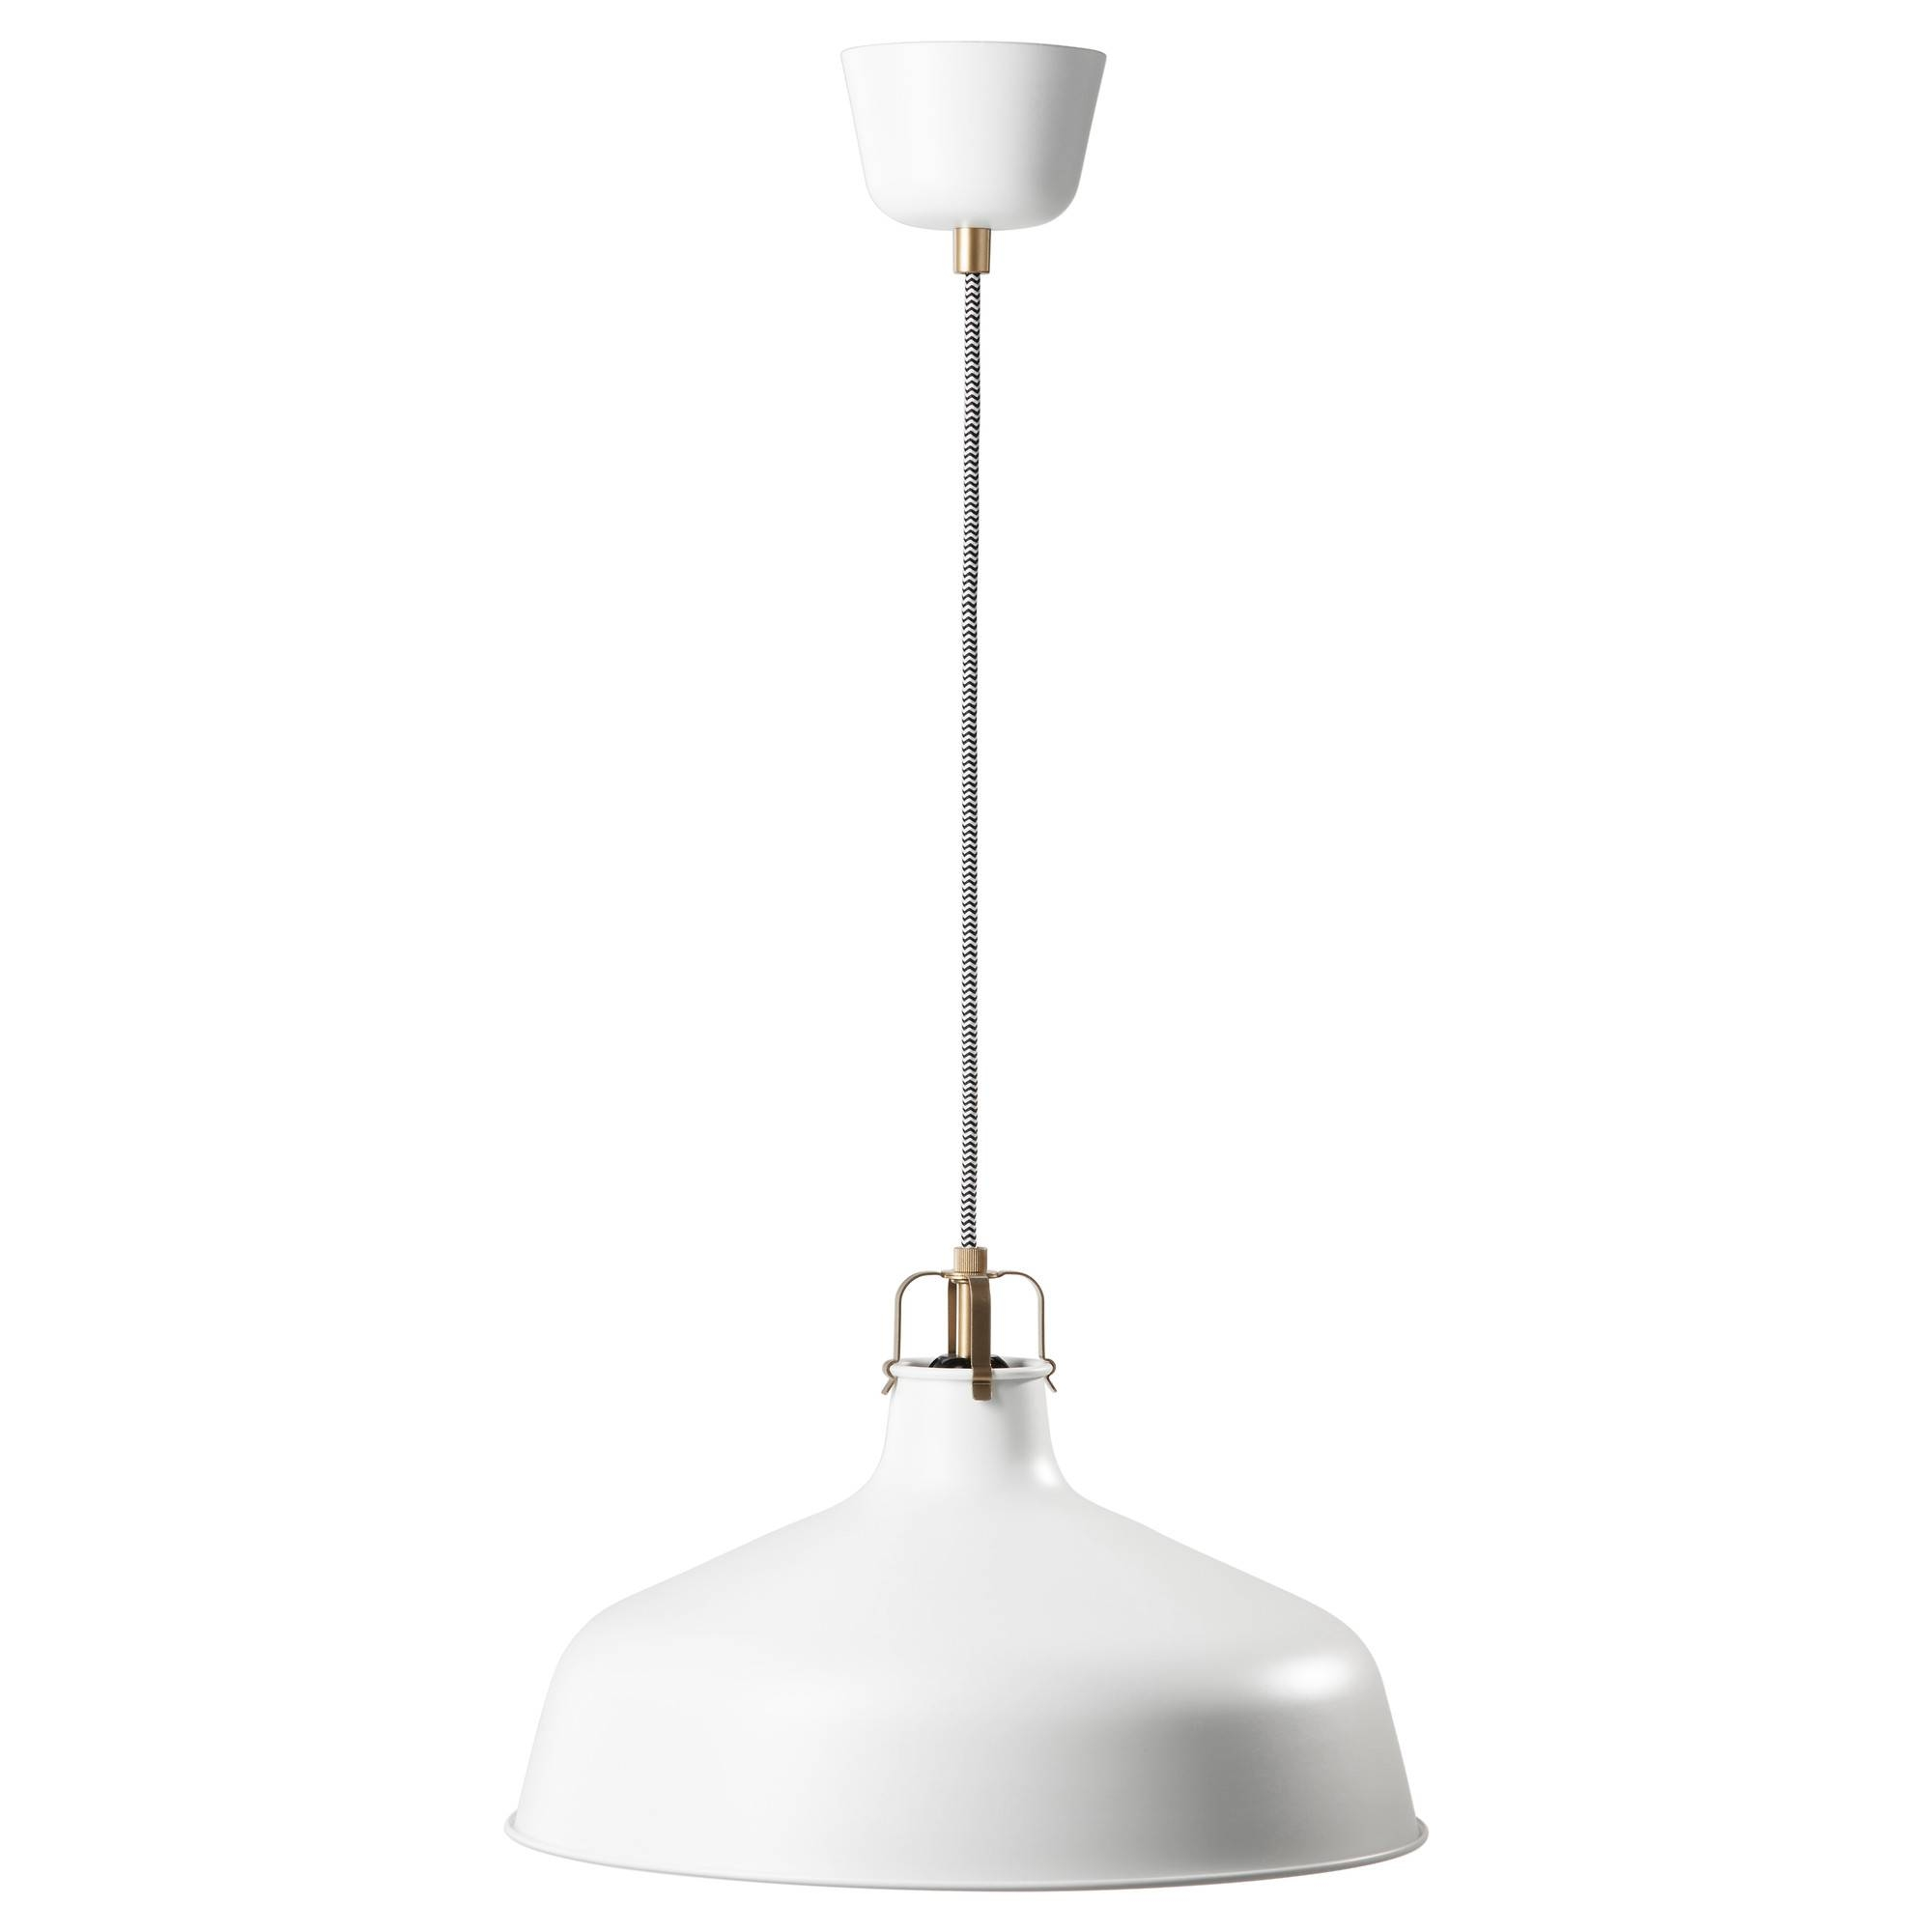 Ranarp Pendant Lamp Off-White 38 Cm - Ikea intended for Ikea Ceiling Lights Fittings (Image 13 of 15)